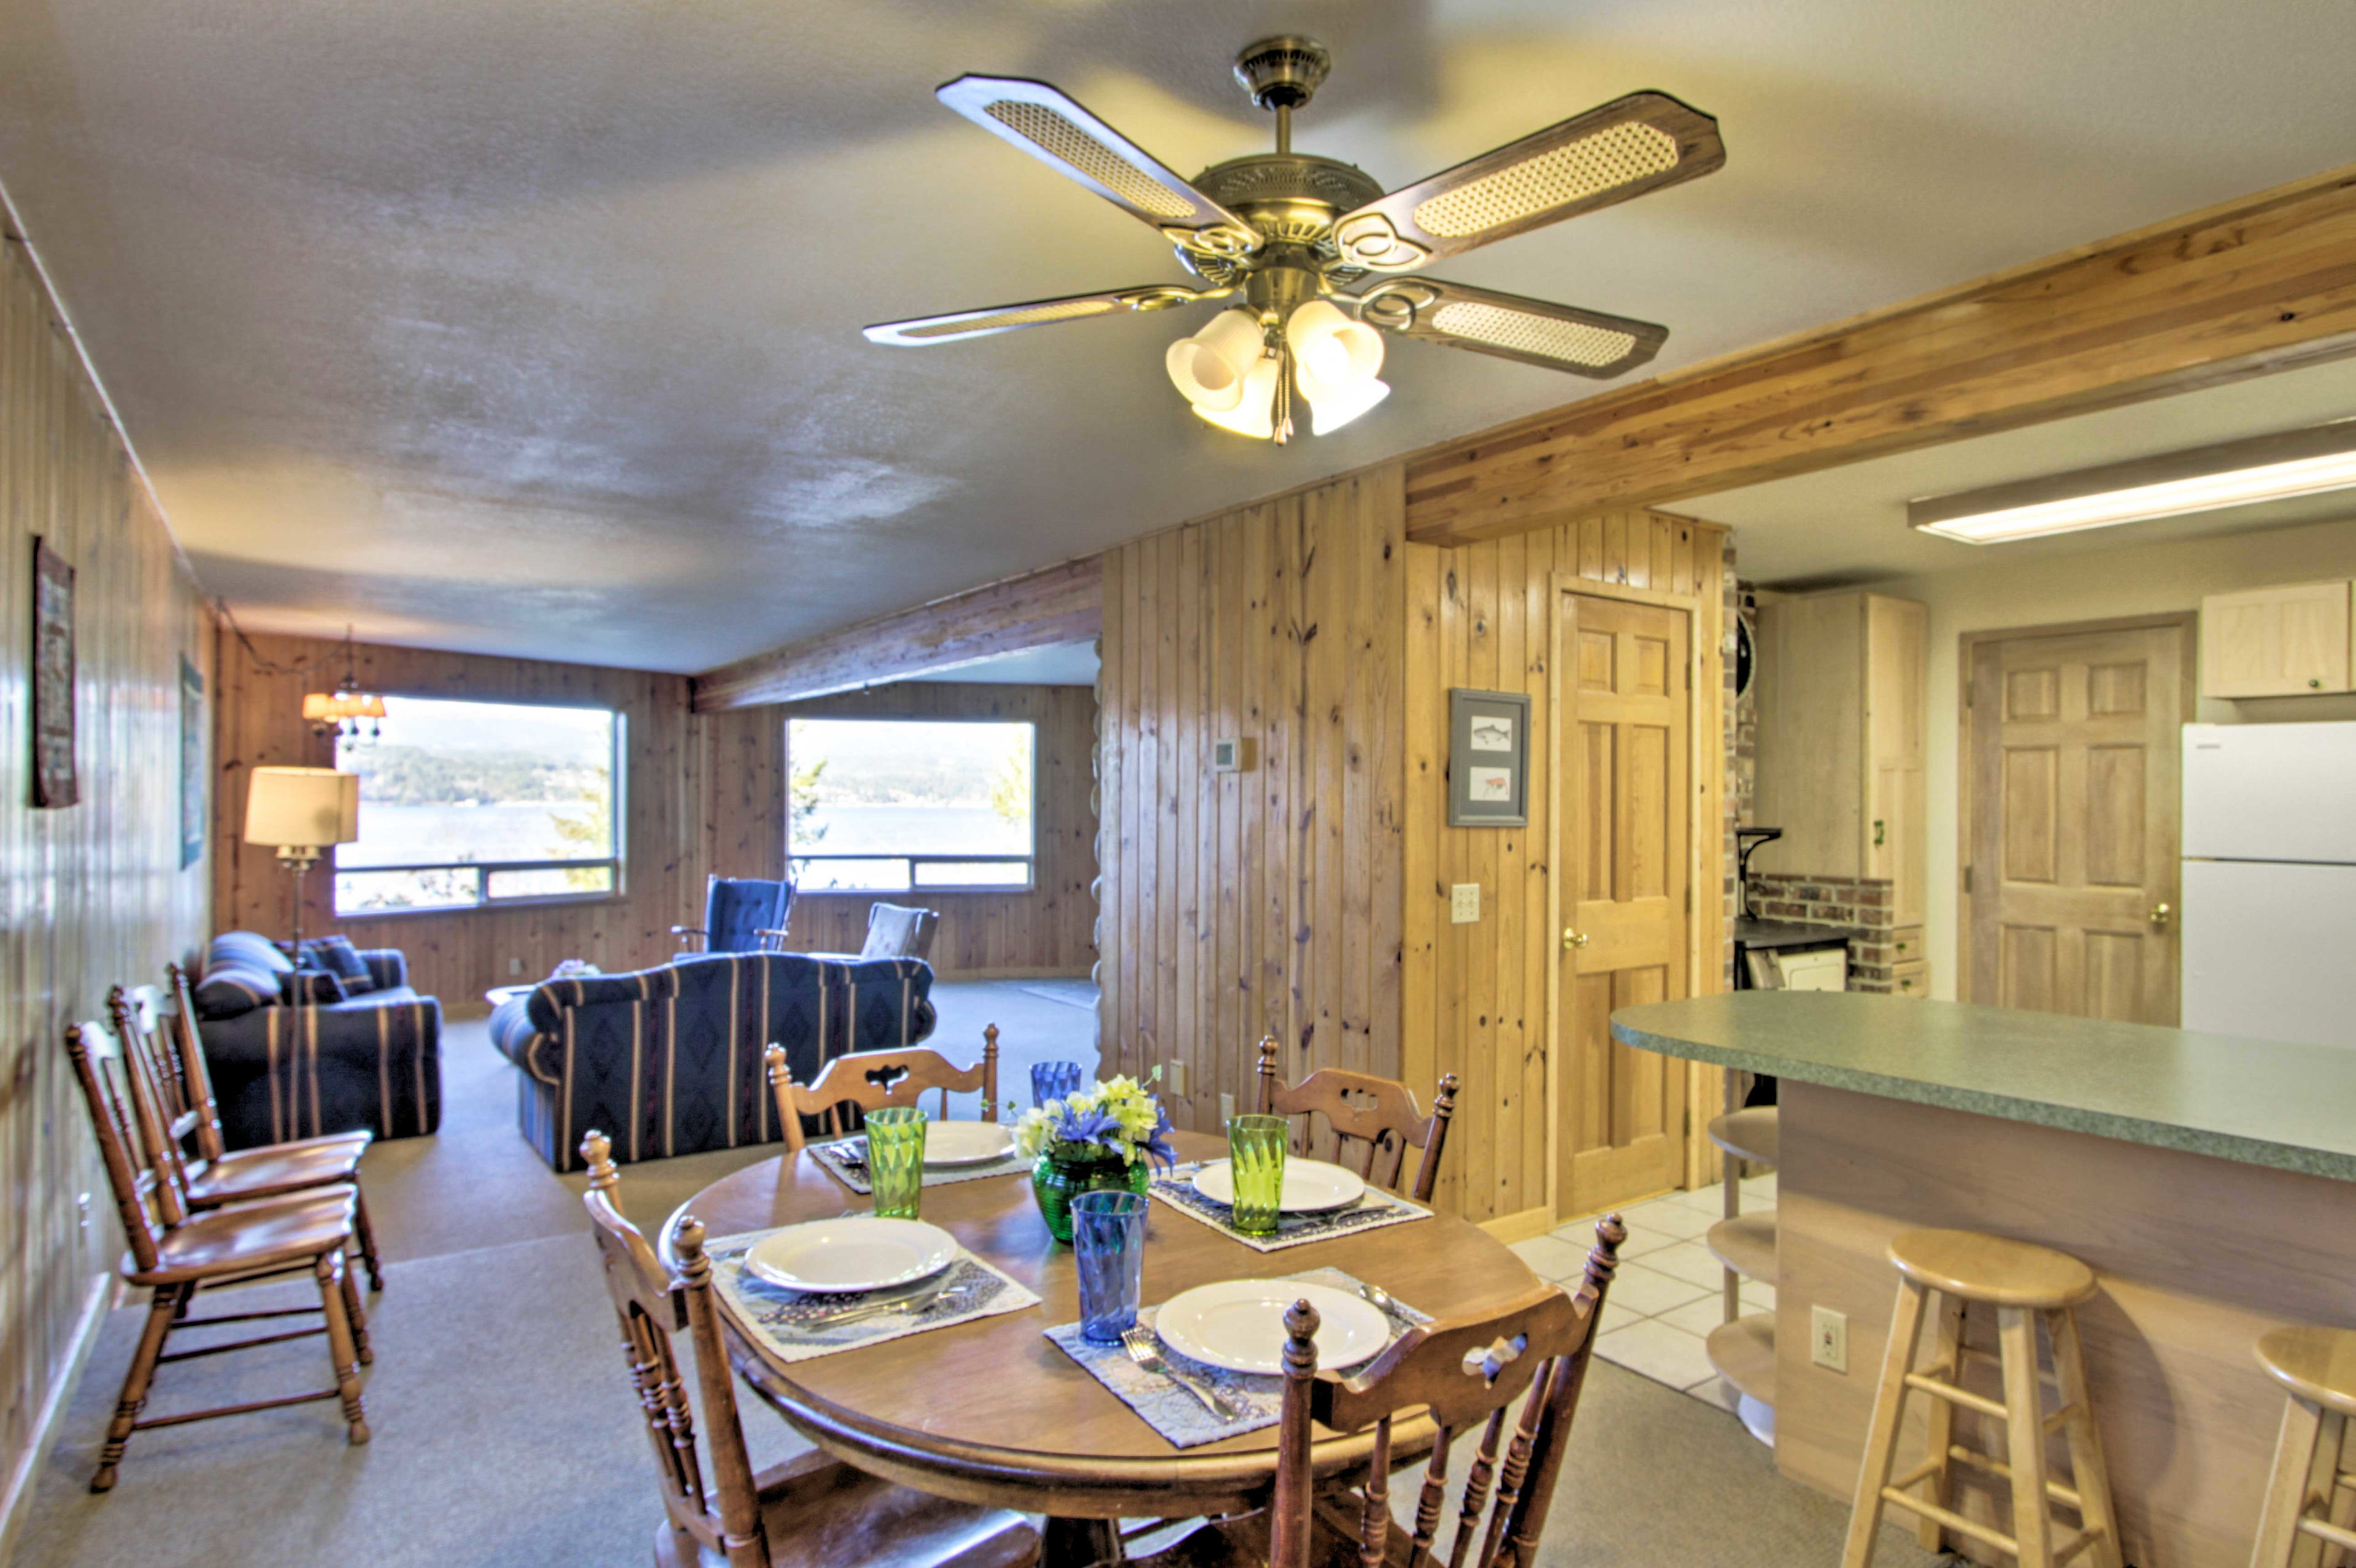 The kitchen and dining area is just steps away.